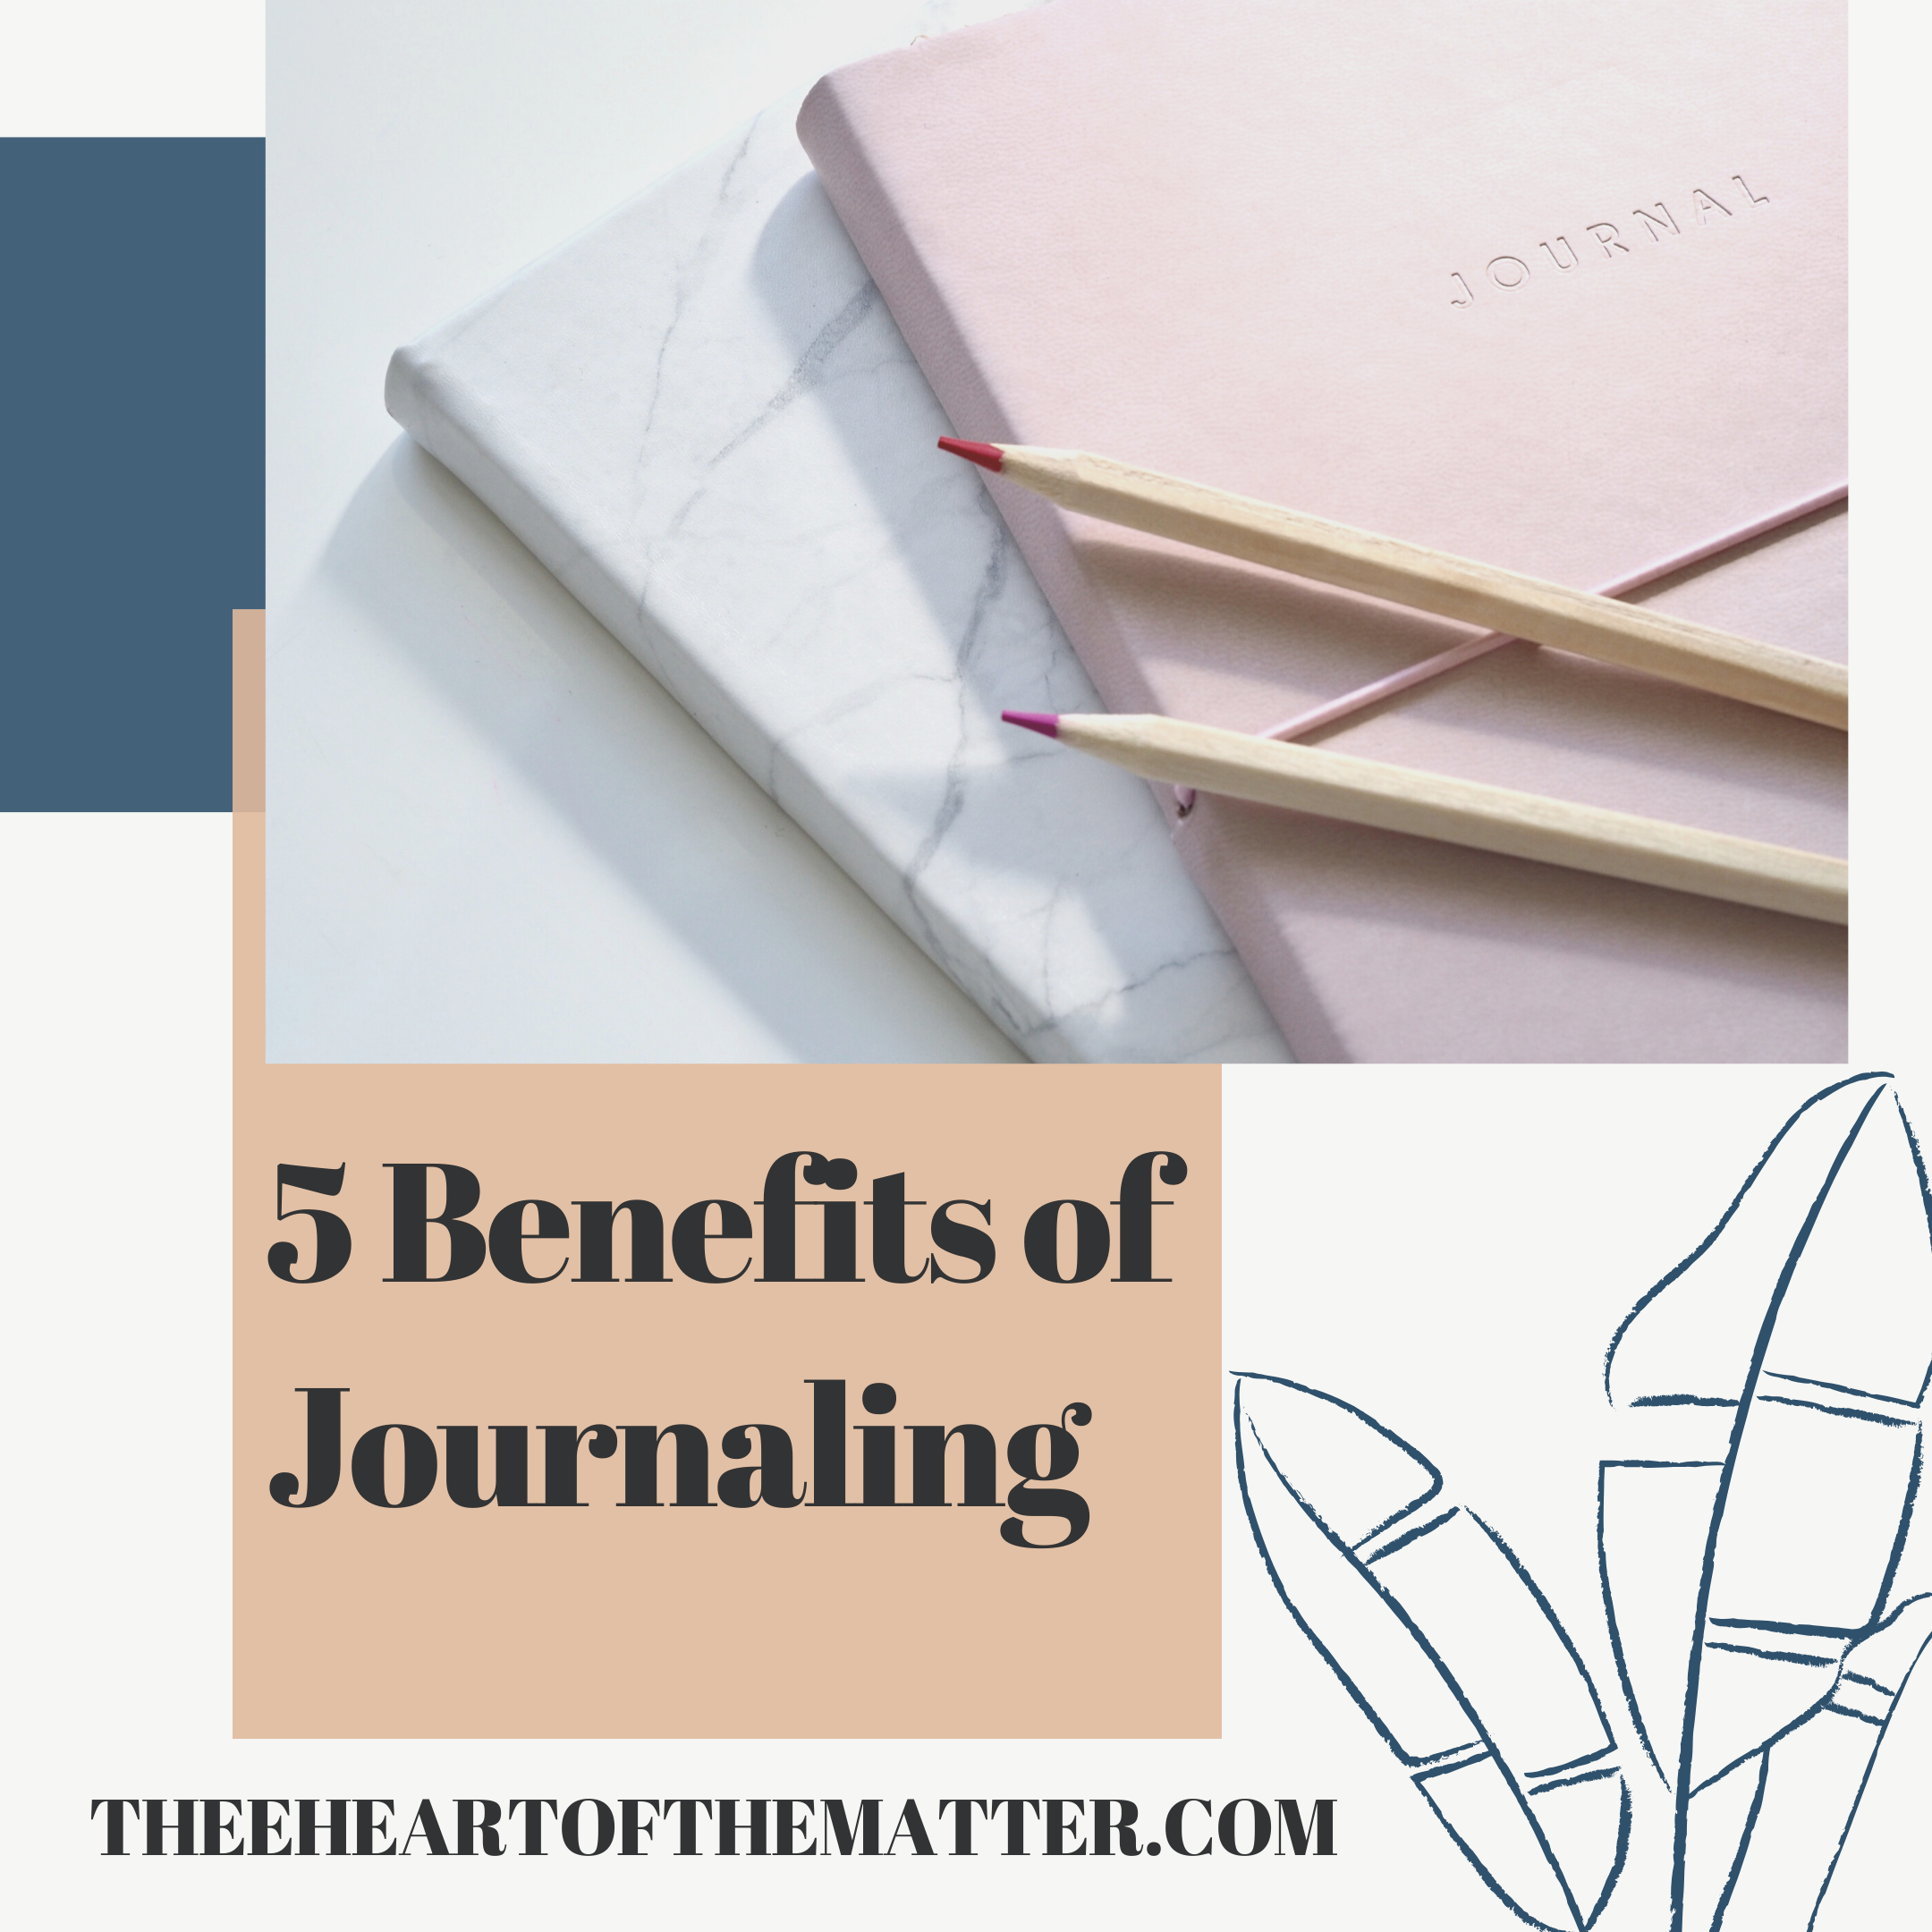 5 Benefits of Journaling